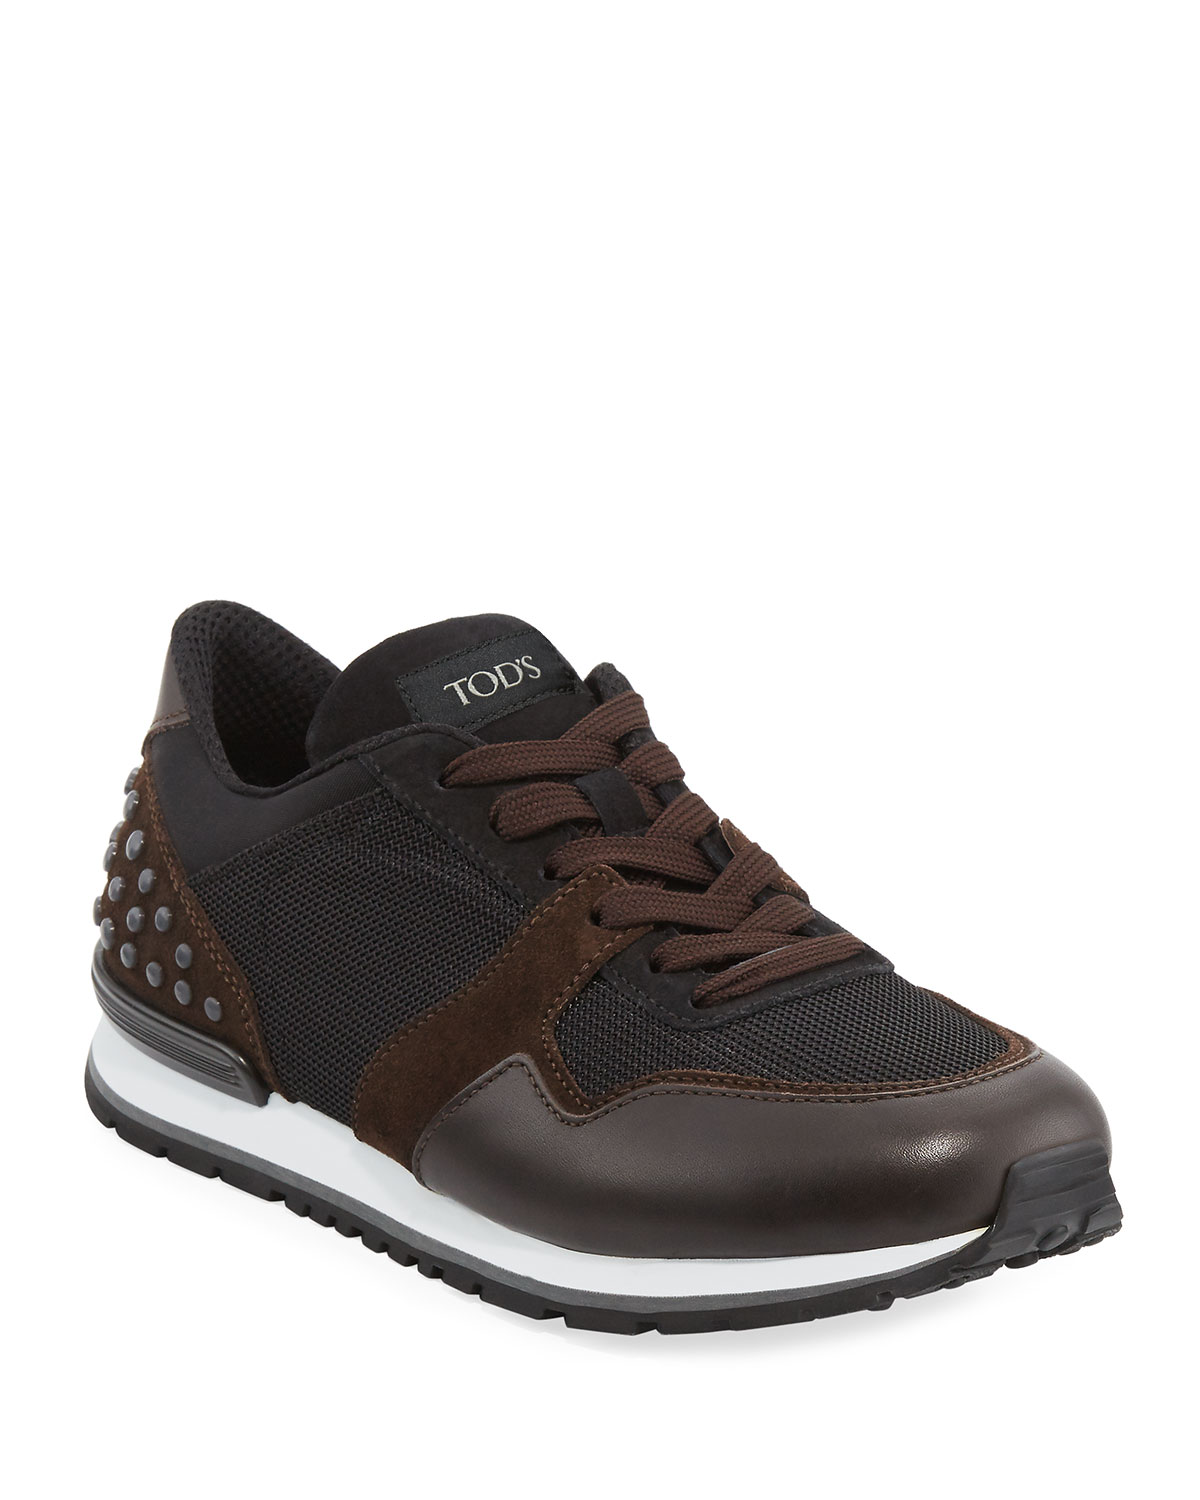 43ffc401f4 Tod's Men's Mesh & Leather Trainer Sneakers, Black/Brown   Neiman Marcus